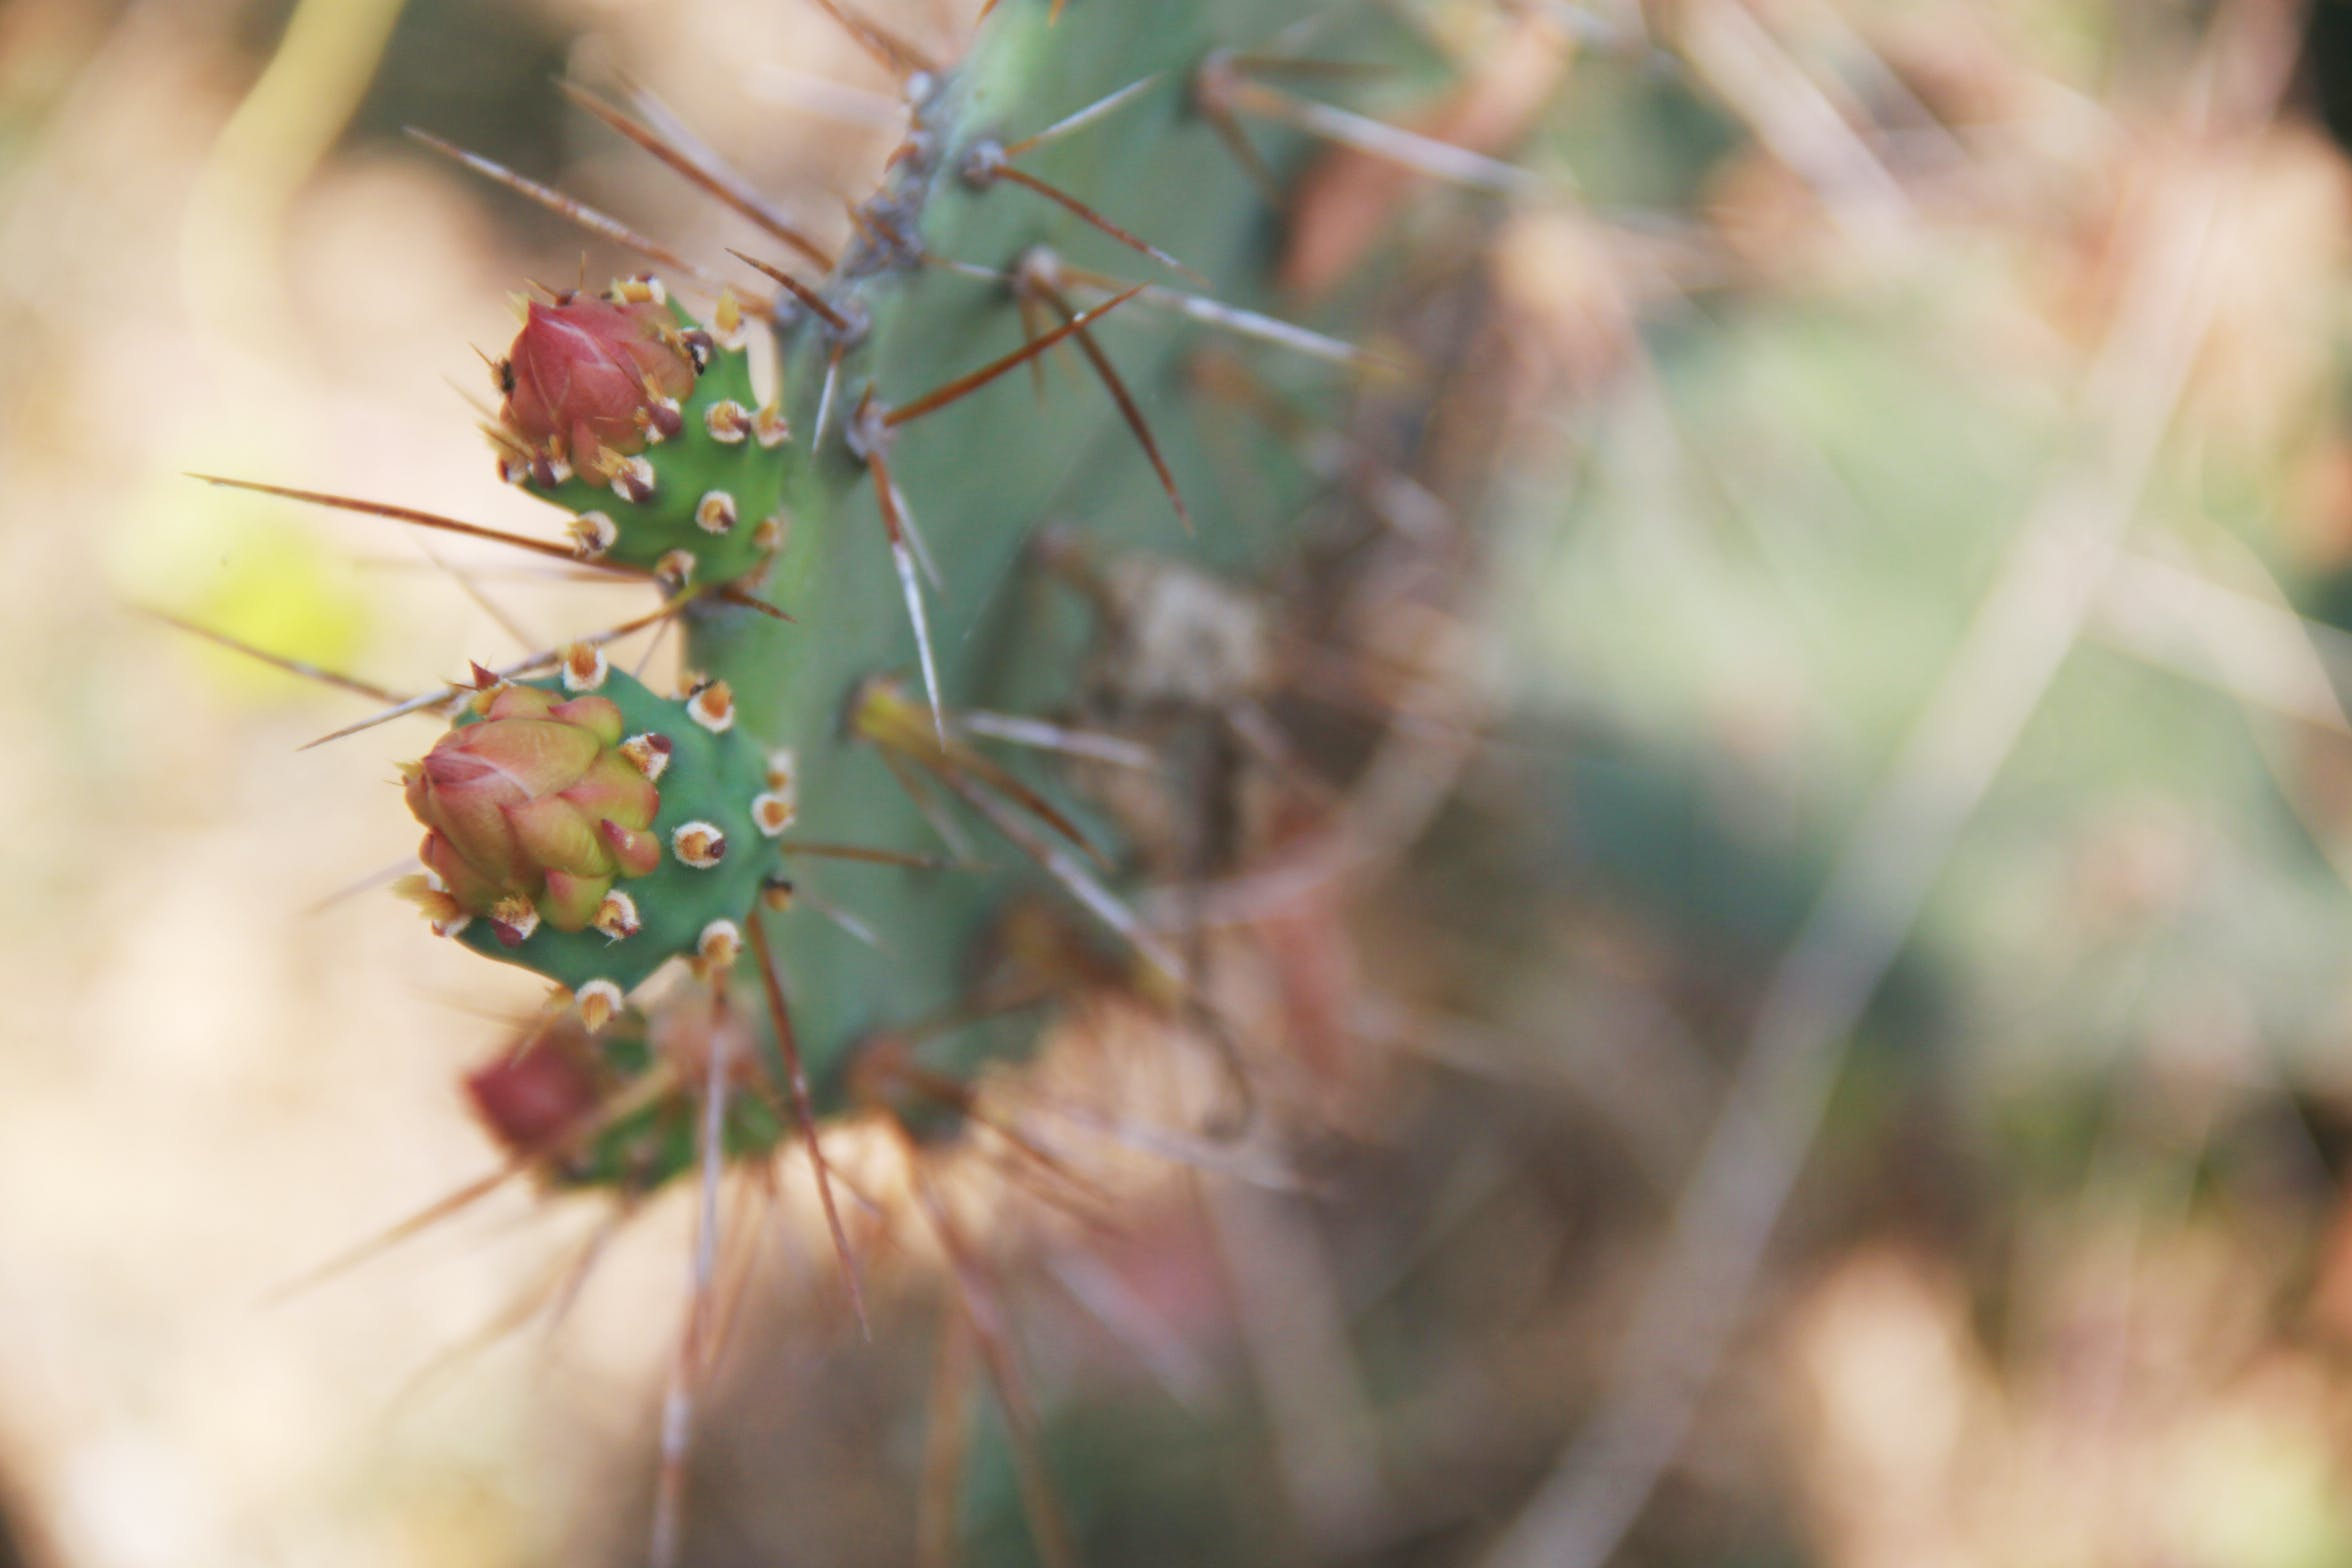 Free stock photo of cactus, close-up view, green, tree